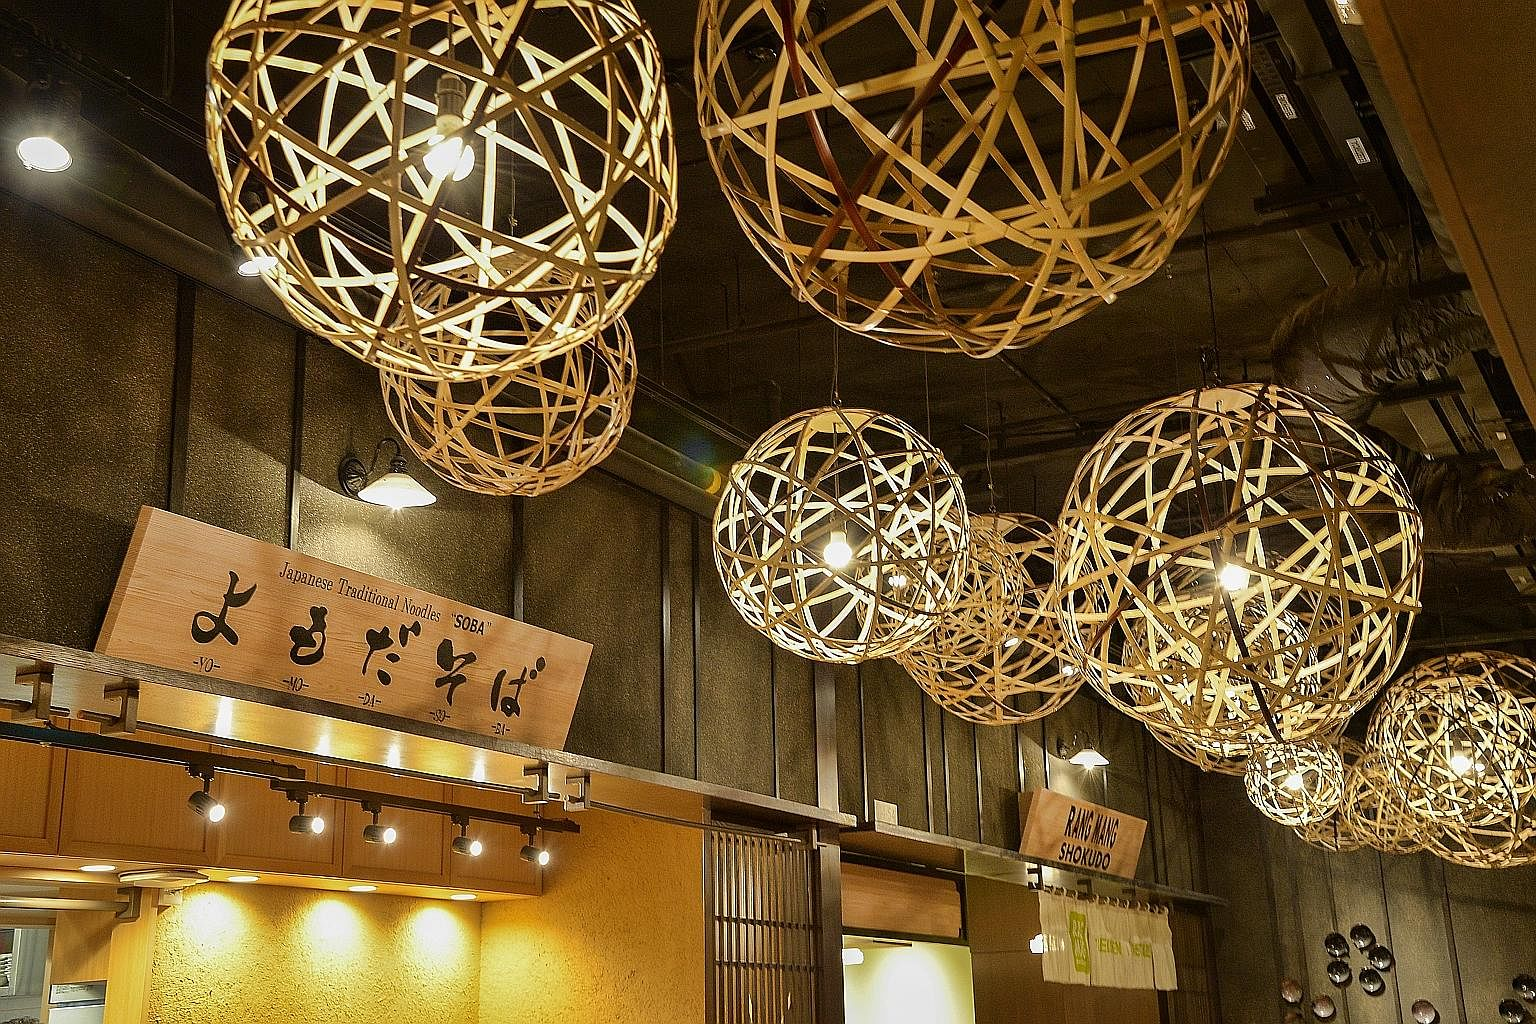 living chandeliers three creative nordic minimalist foyer wood lamp chinese from ball europe lamps room single northern lighting head solid elegant japanese chandelier pendant modern item wooden in lights study dining